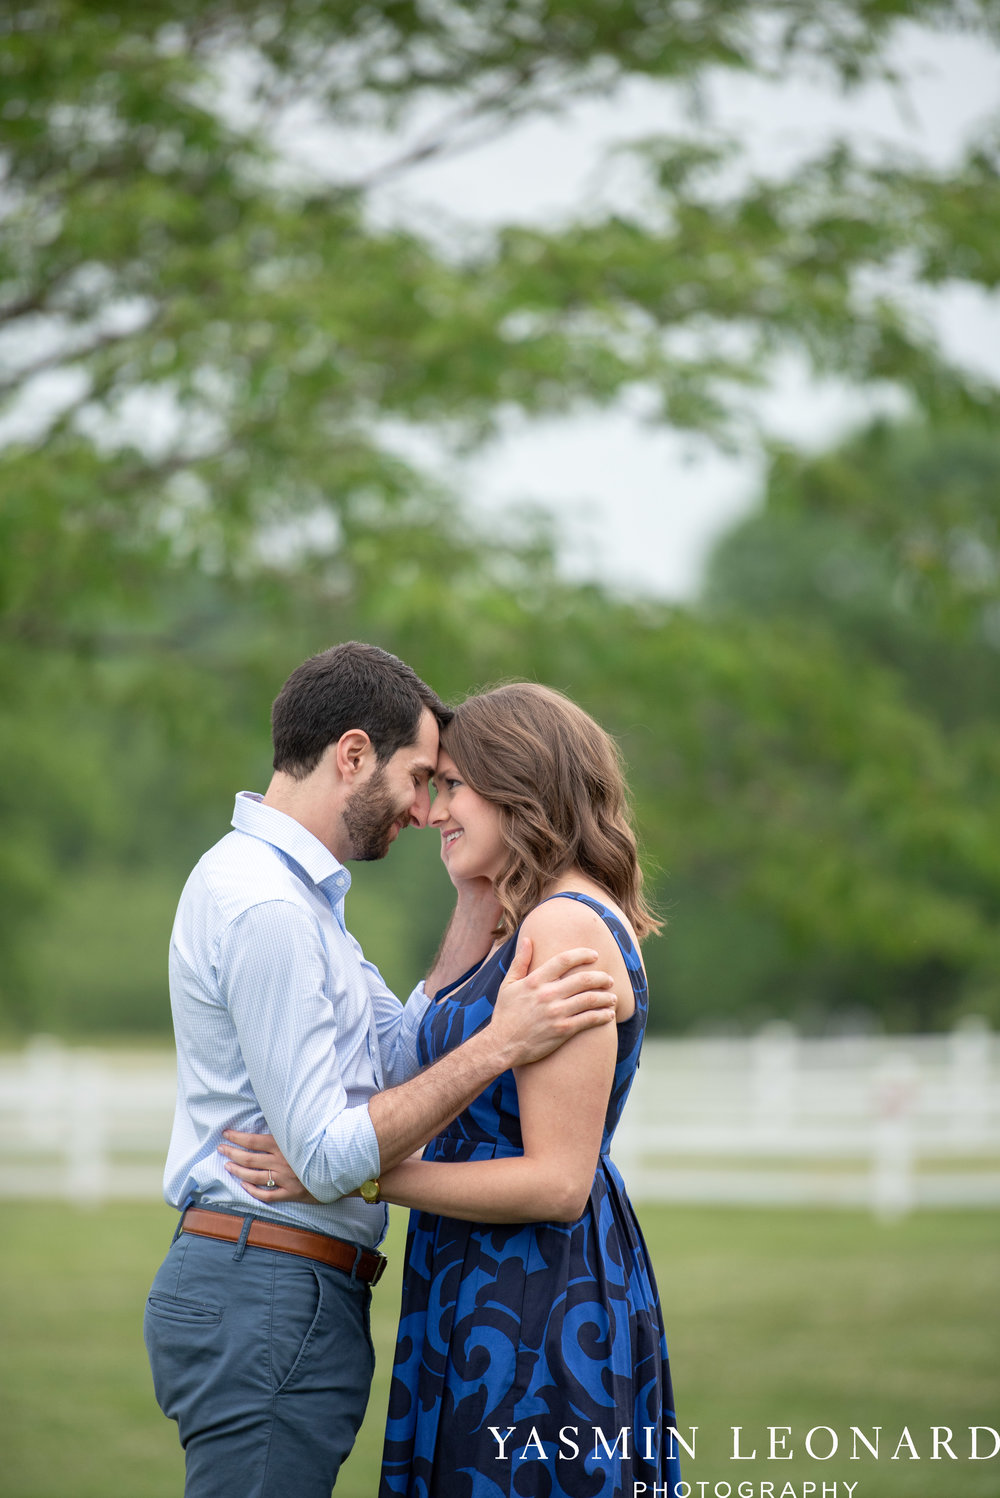 Adaumont Farm - Adaumont Farm Engagement Session - Adaumont Farm Weddings - NC Weddings - Engagement Session - ESession Ideas - Dressy Engagement Session - How to Engagement Session - How to Wedding-3.jpg